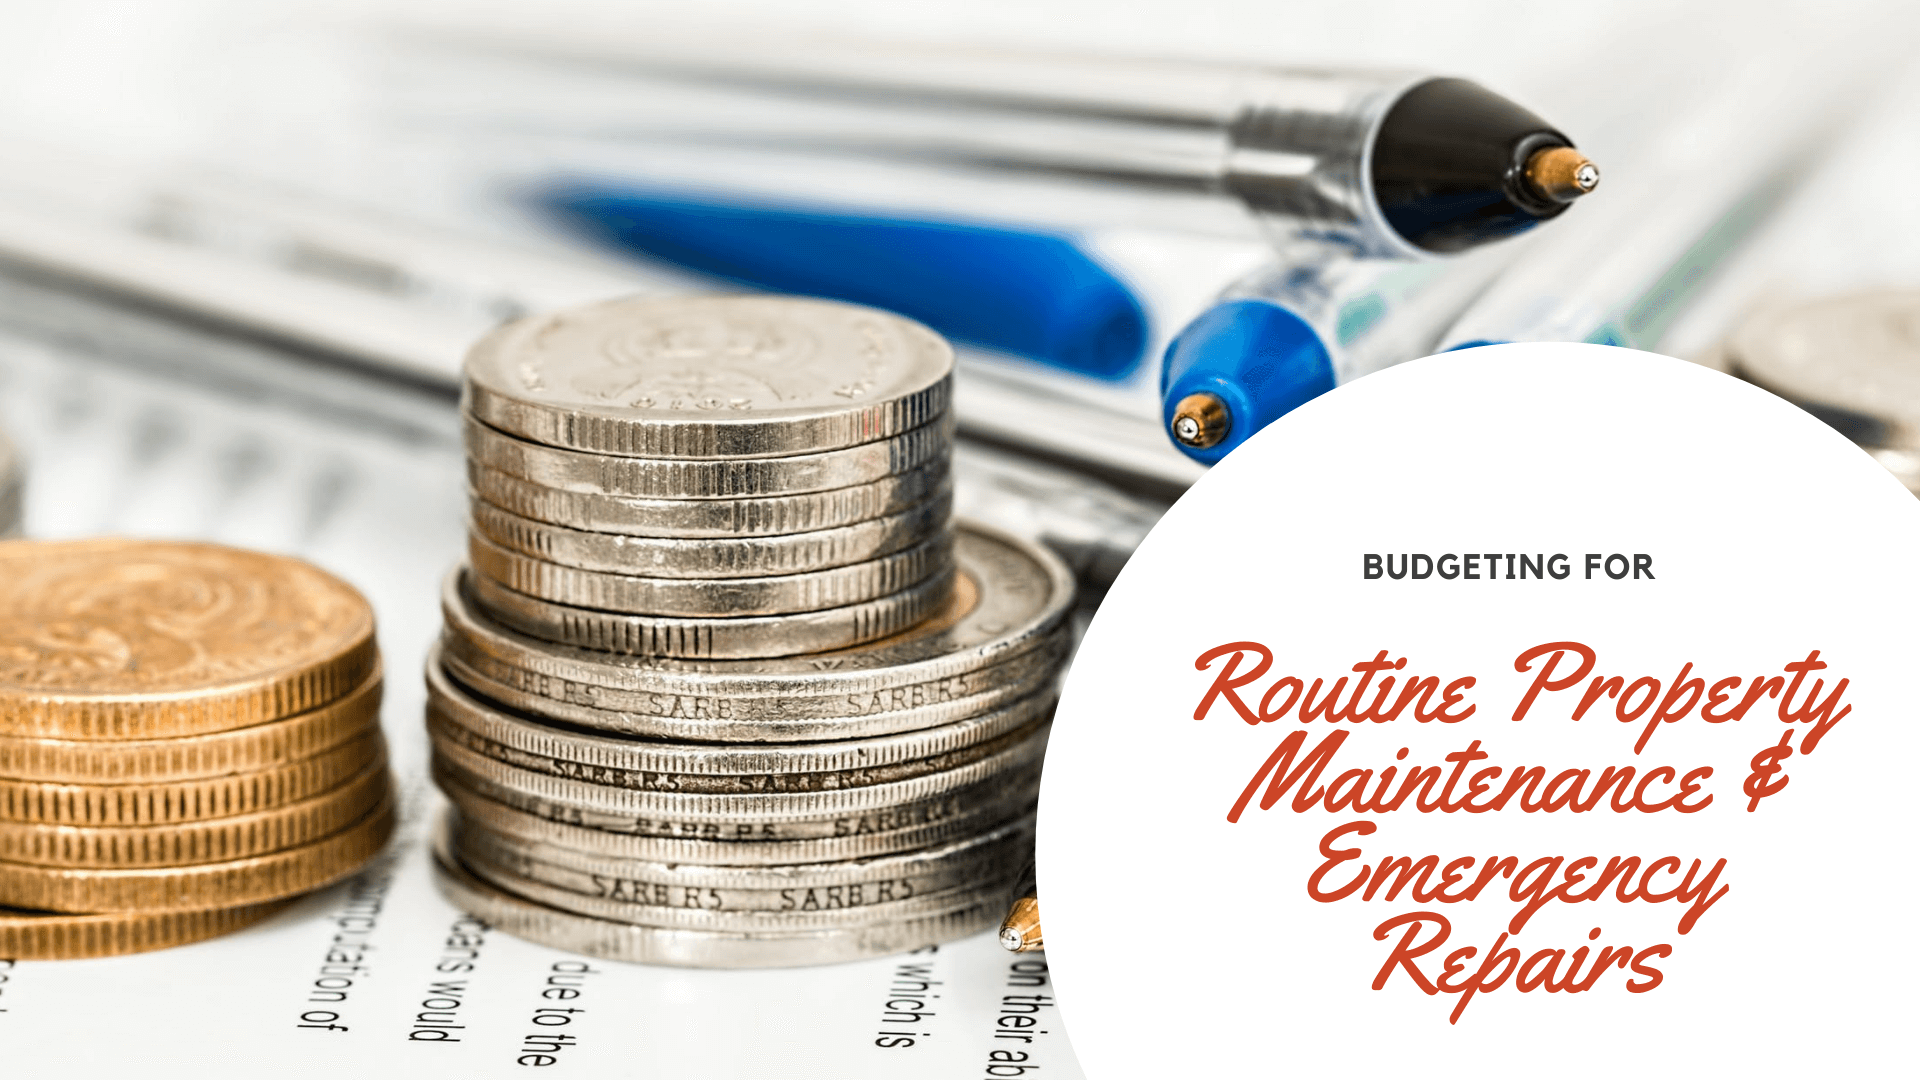 Budgeting for Routine Property Maintenance & Emergency Repairs